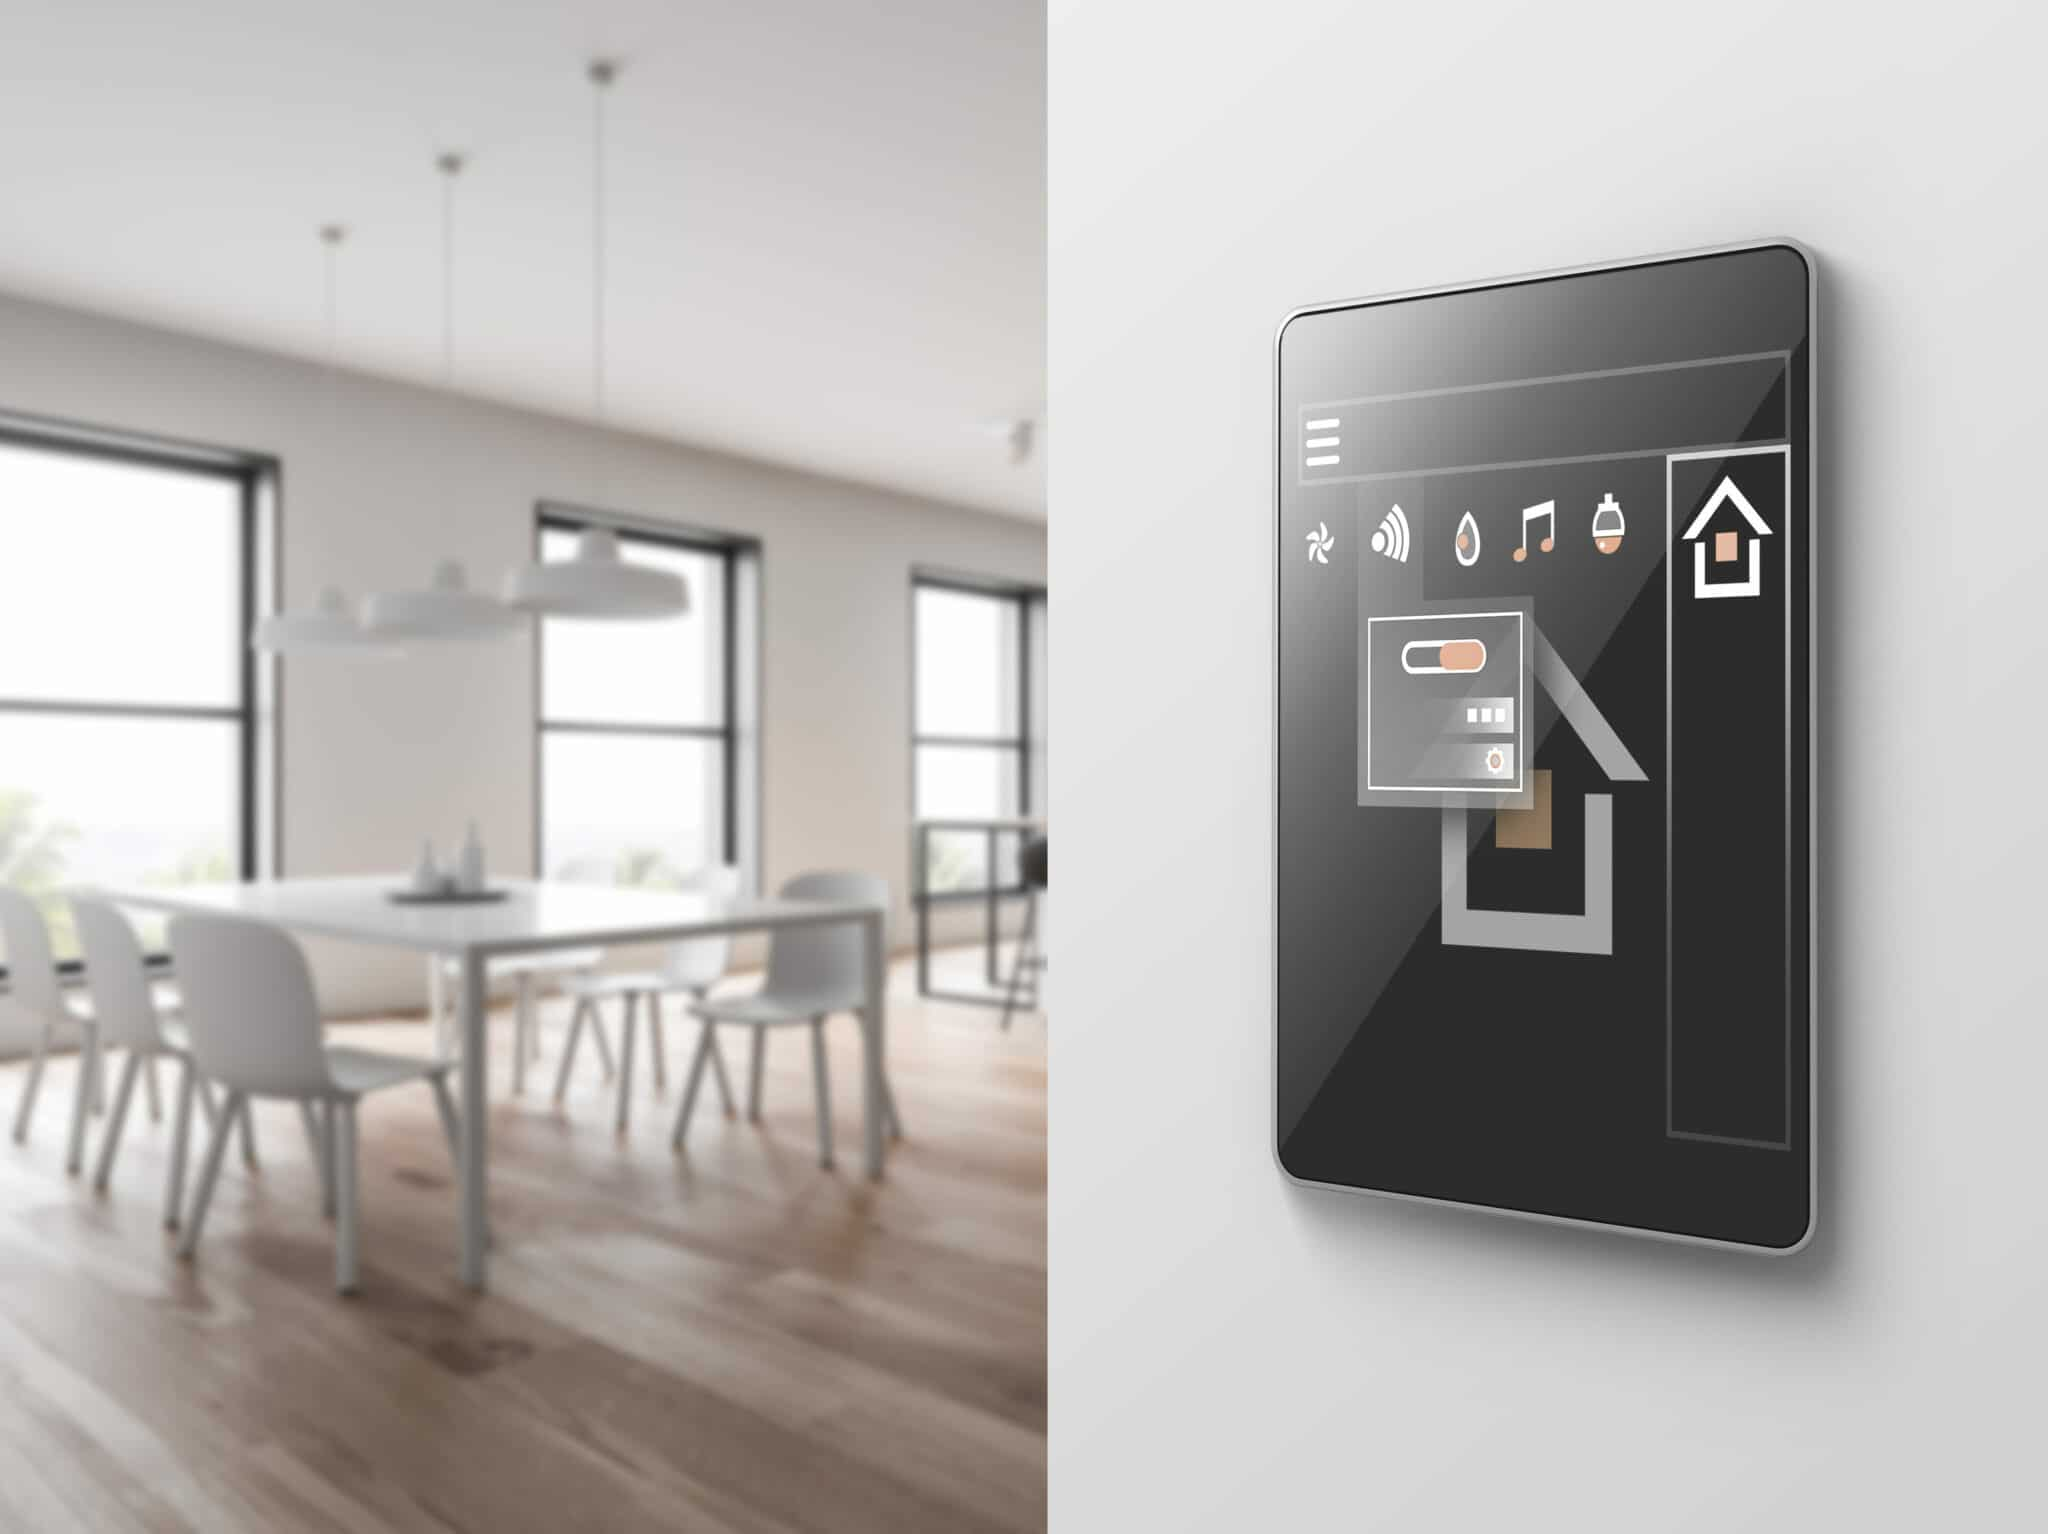 In the foreground there is a touchscreen control panel for smart blinds mounted to a wall. In the background is a dinning room with blinds installed in the windows.